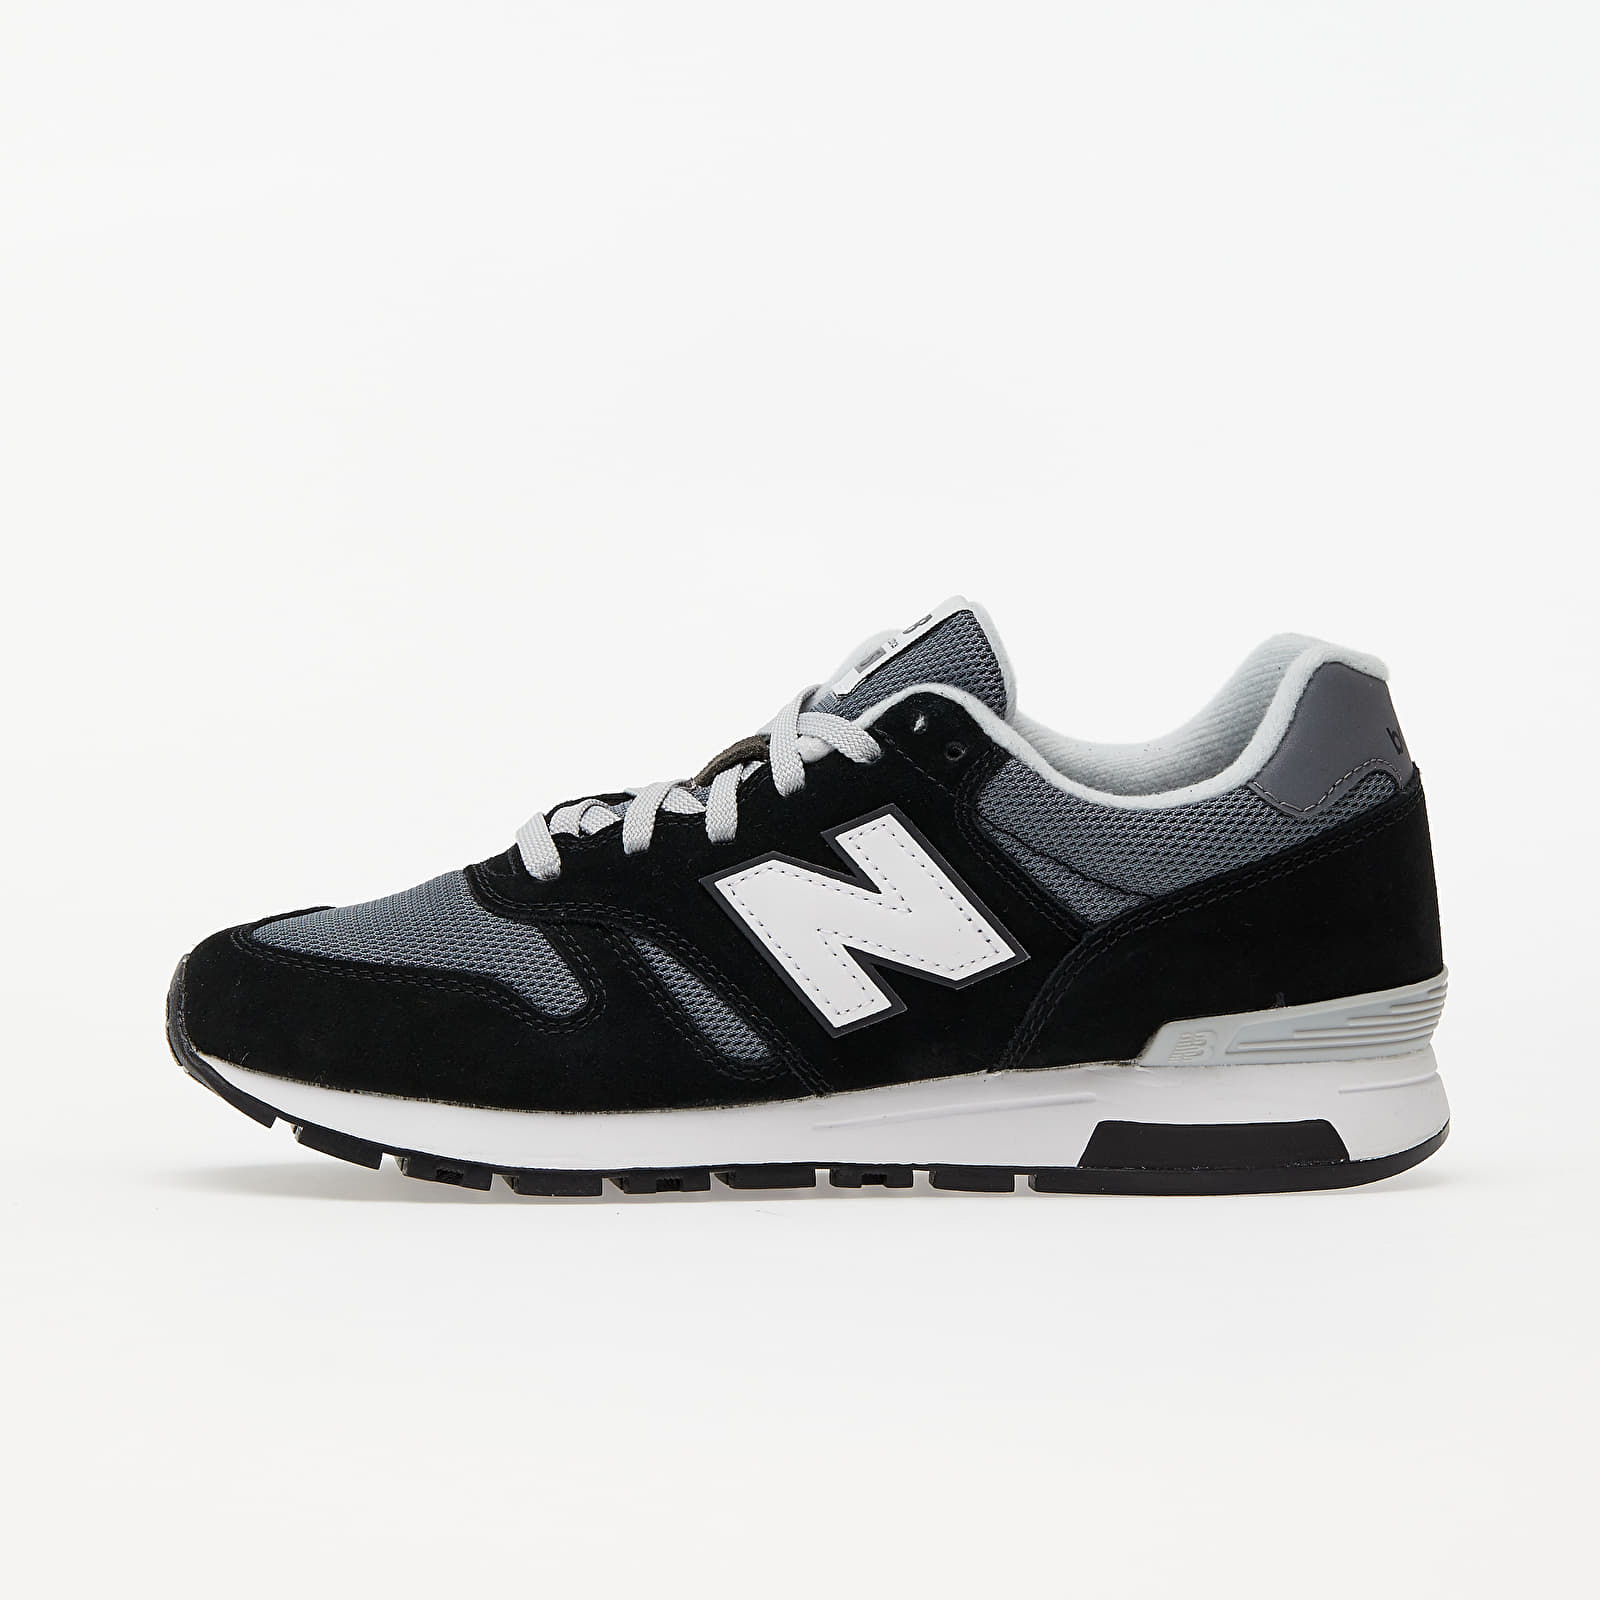 New Balance 565 Black/ Grey EUR 44.5